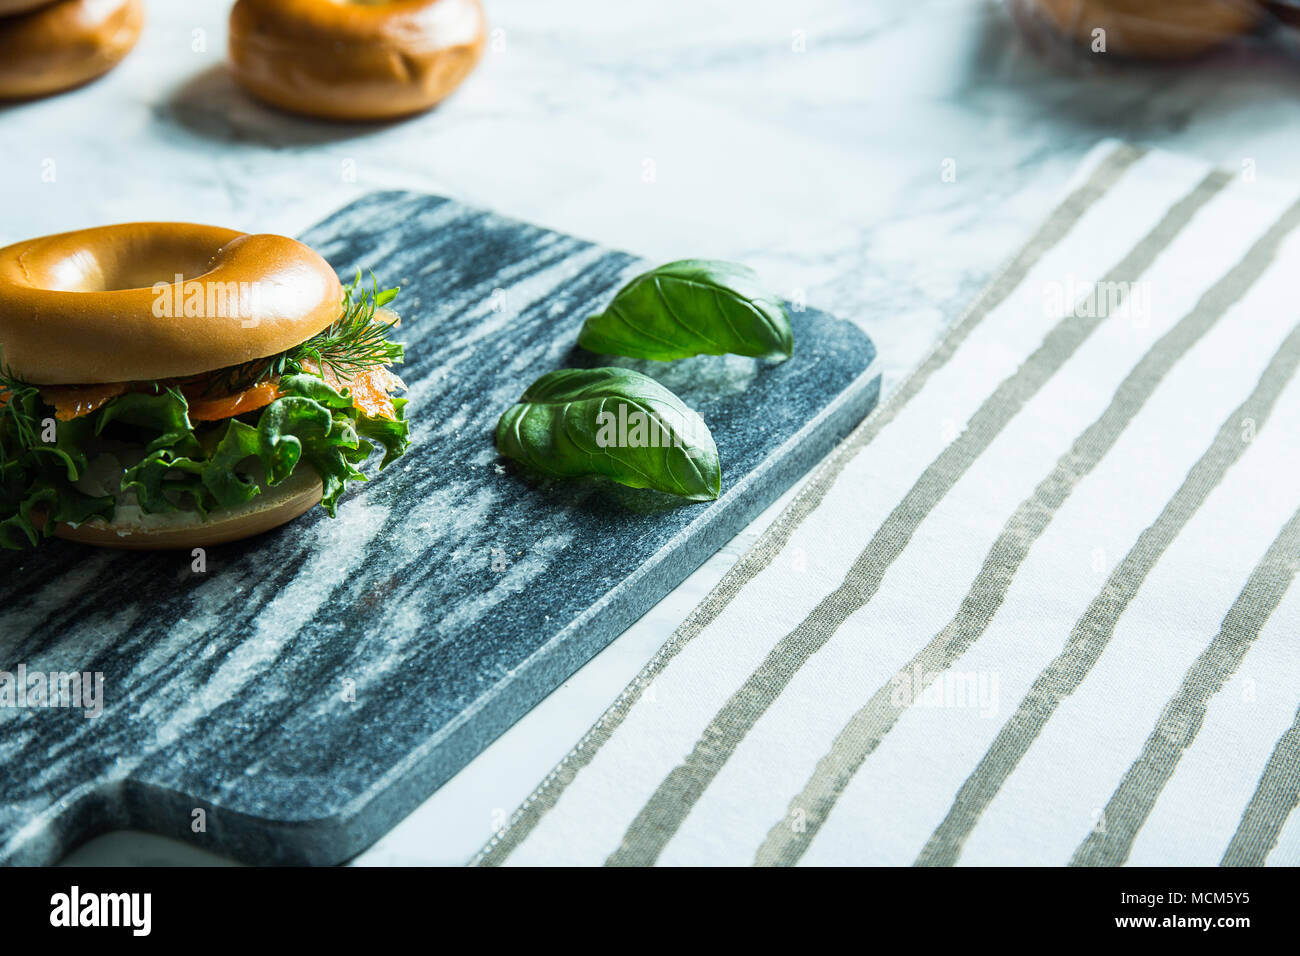 Salmon bagel on a stone cutting tablet with basil leaves on the side. - Stock Image